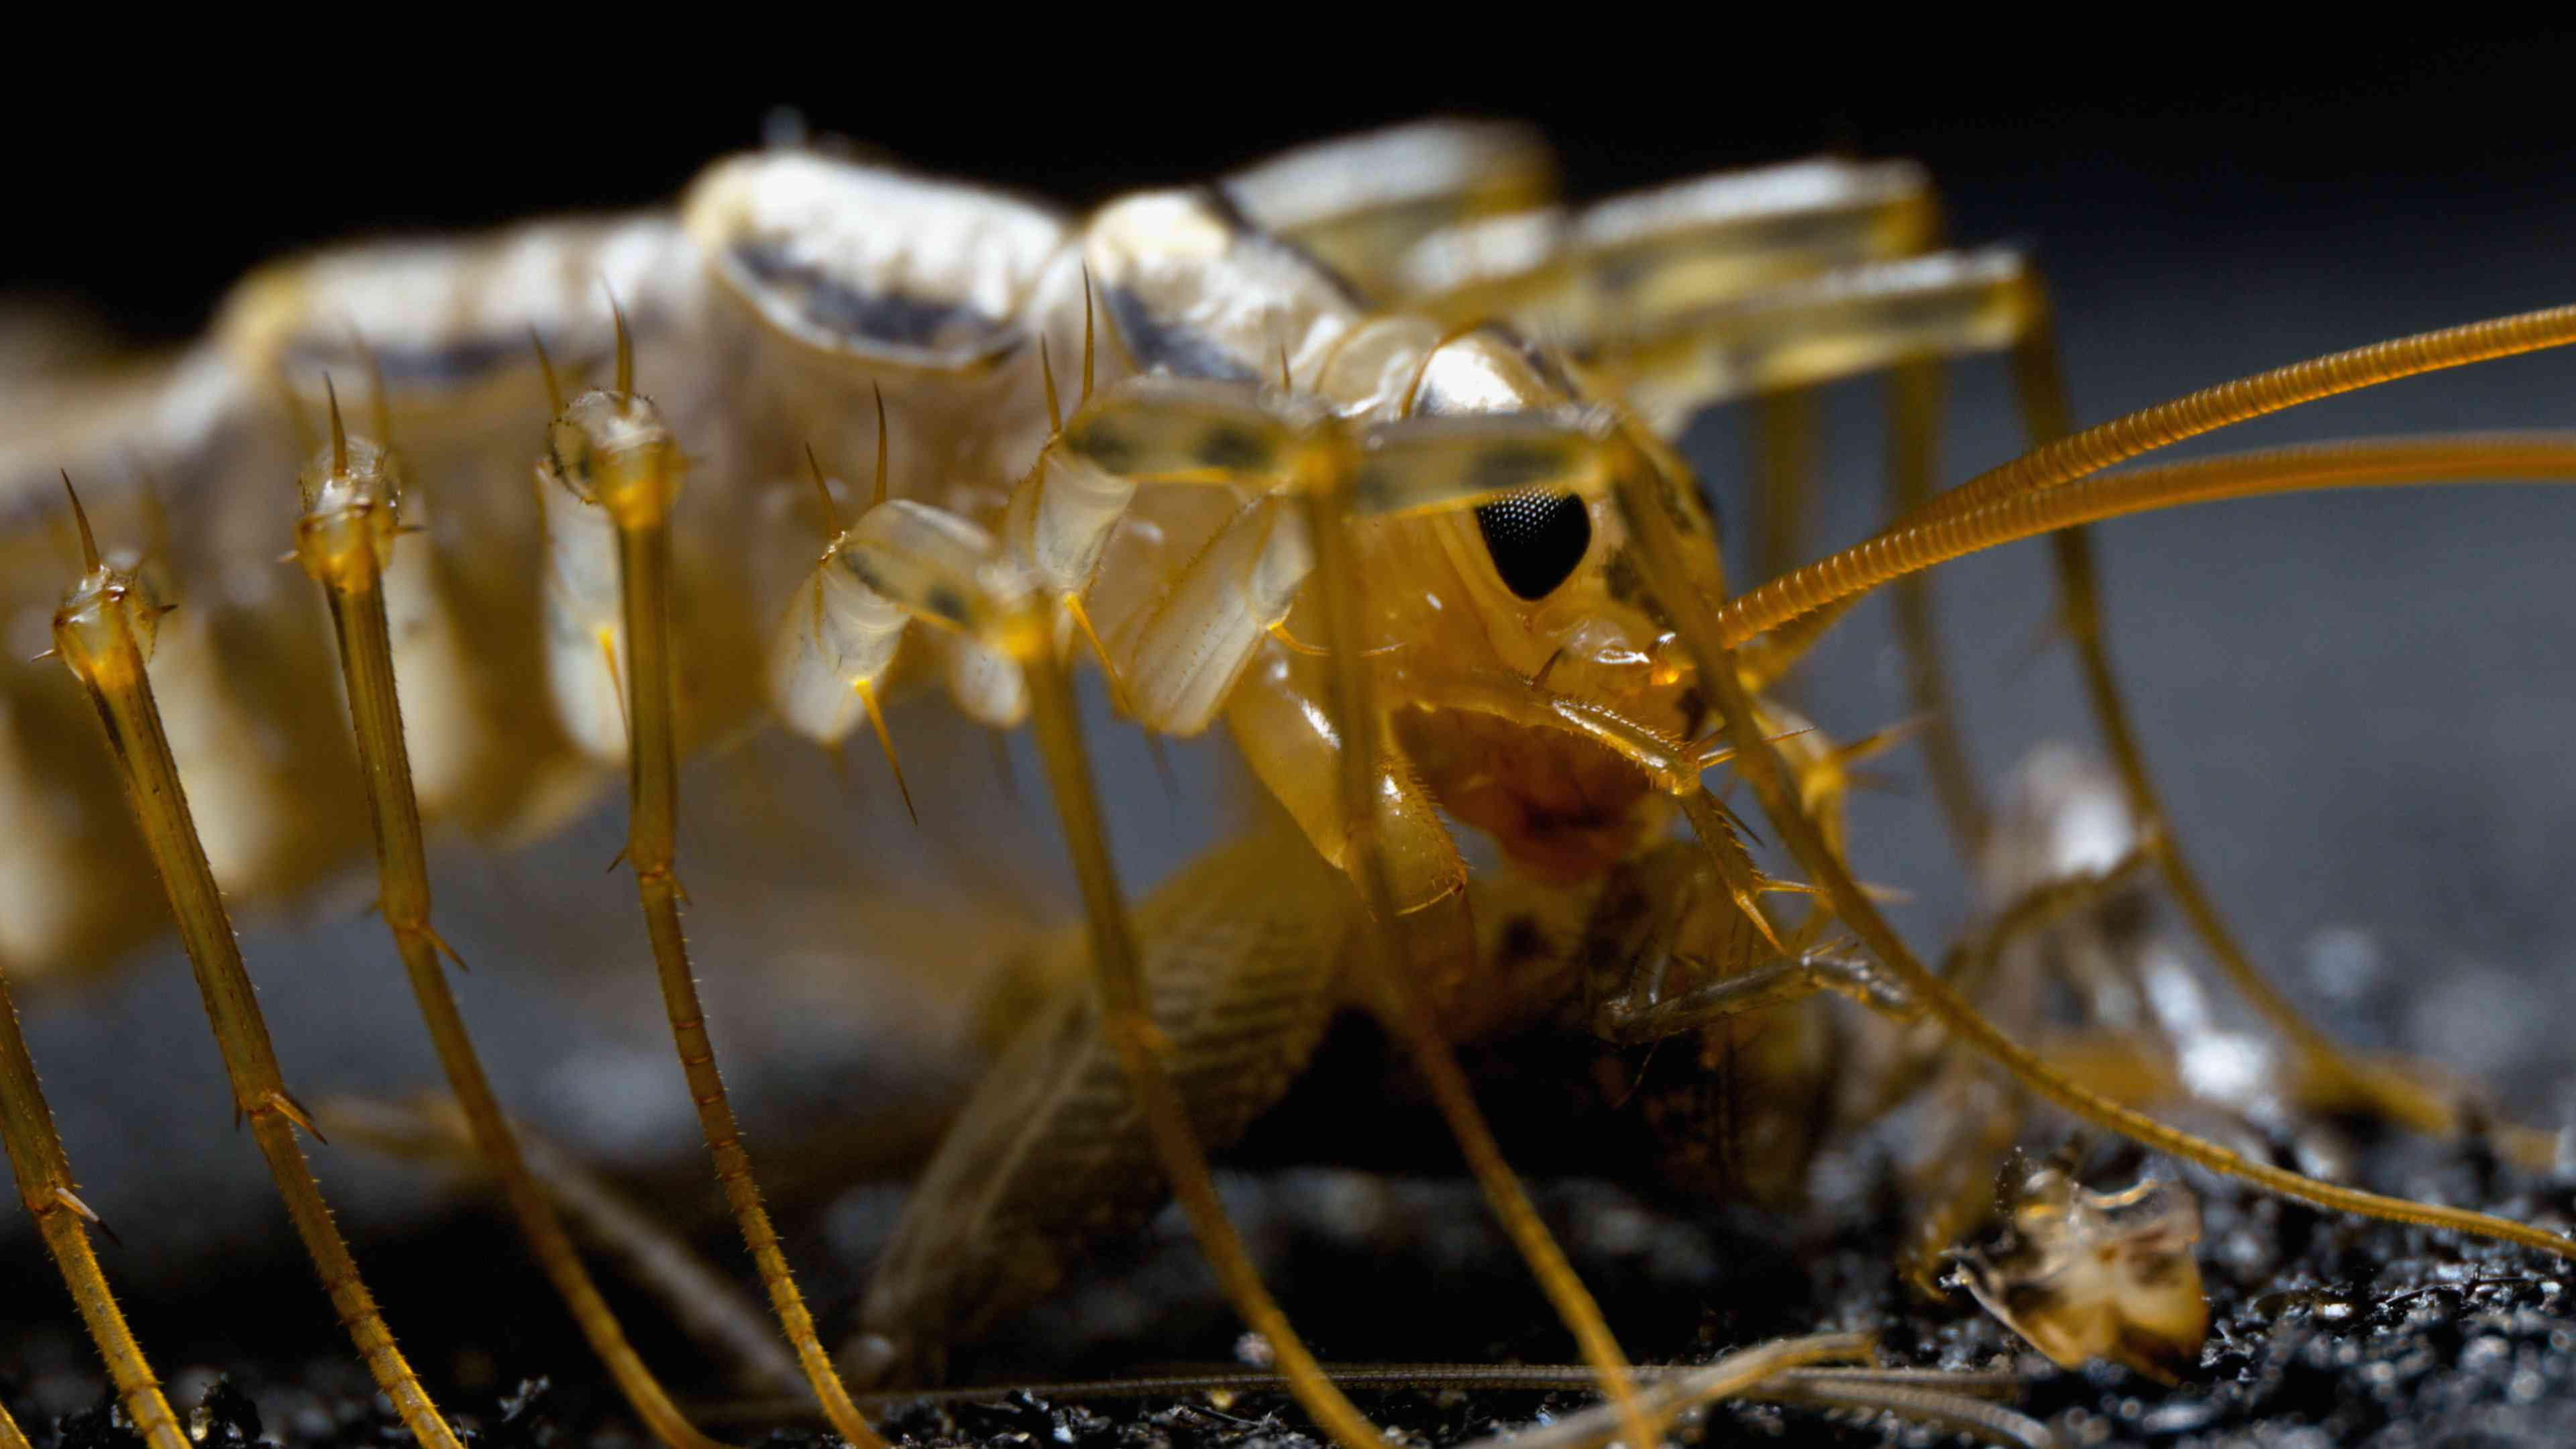 The House Centipede is one impressive creepy crawly worth marveling at